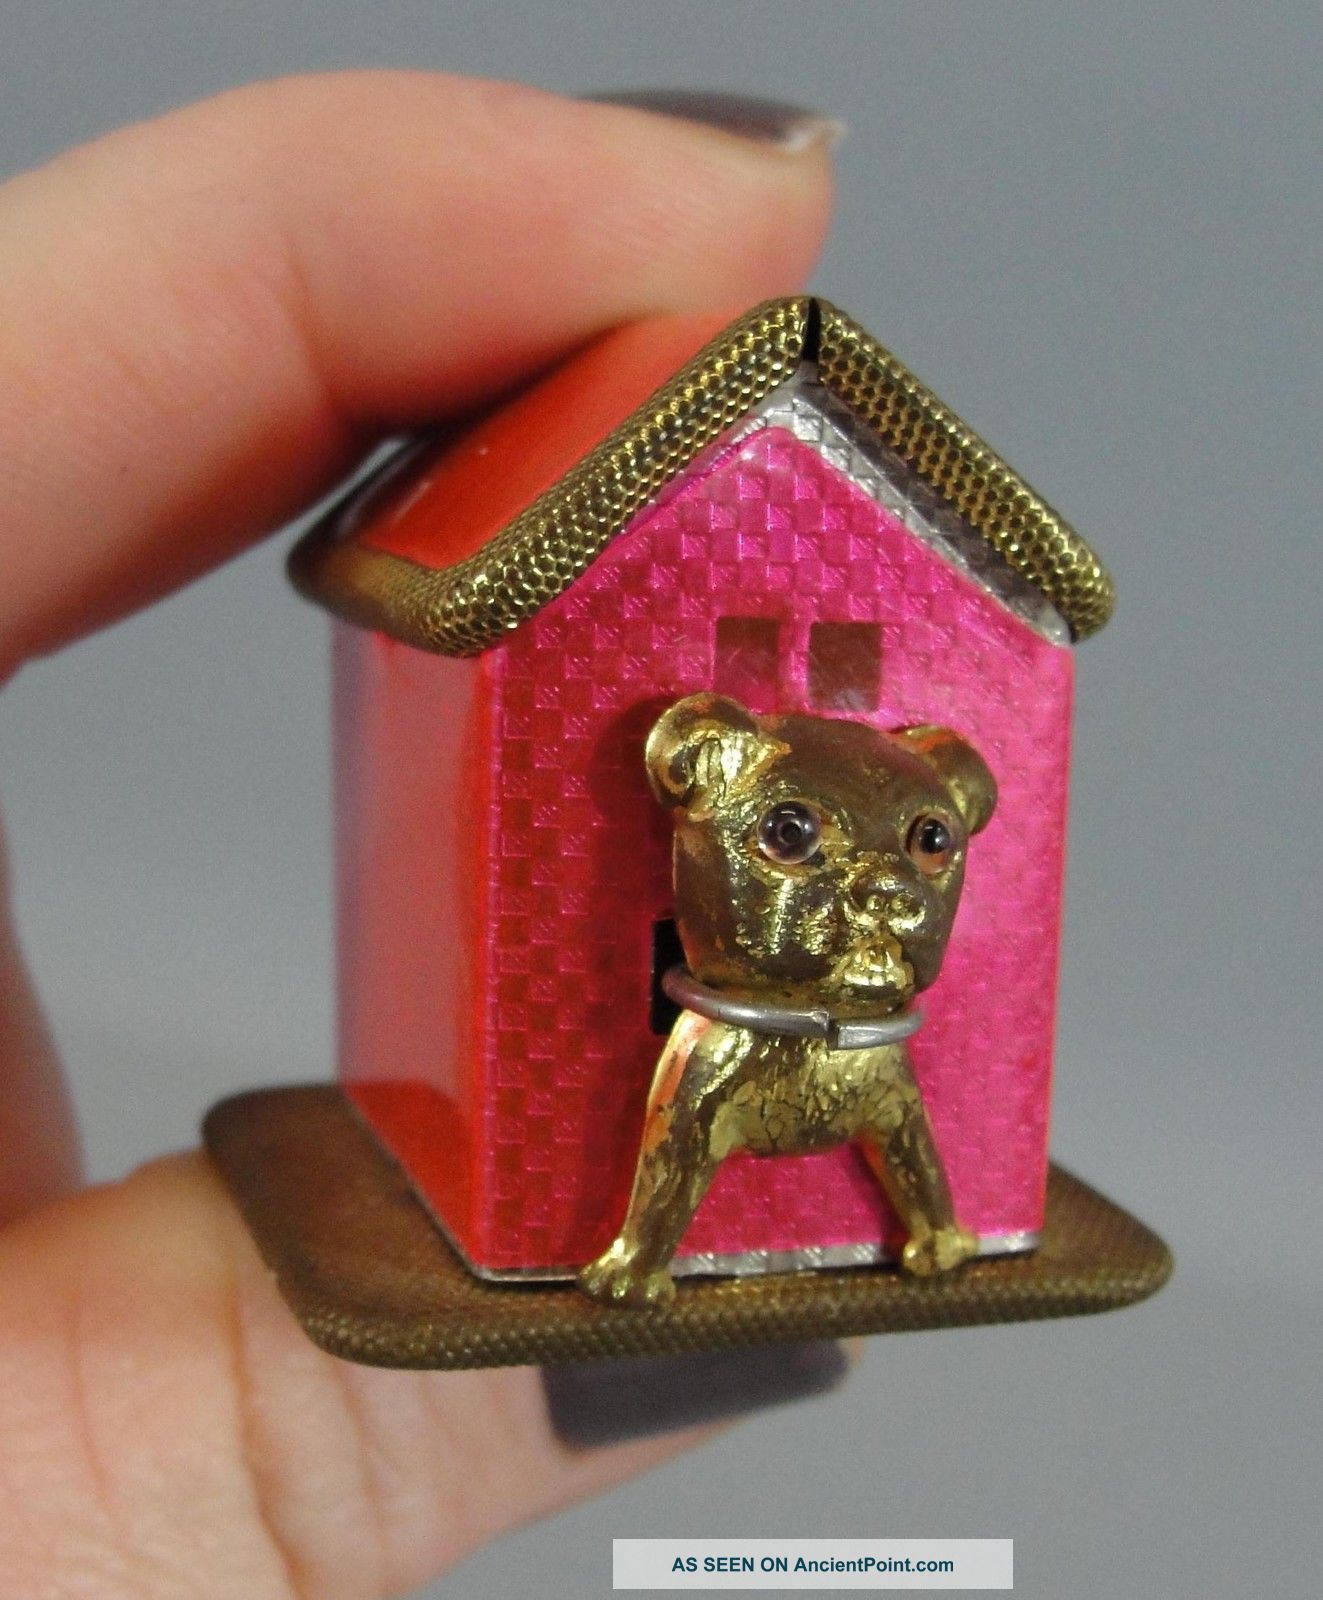 Antique German French Bull Dog Brass Novelty Figural Sewing Measuring Tape Tools, Scissors & Measures photo